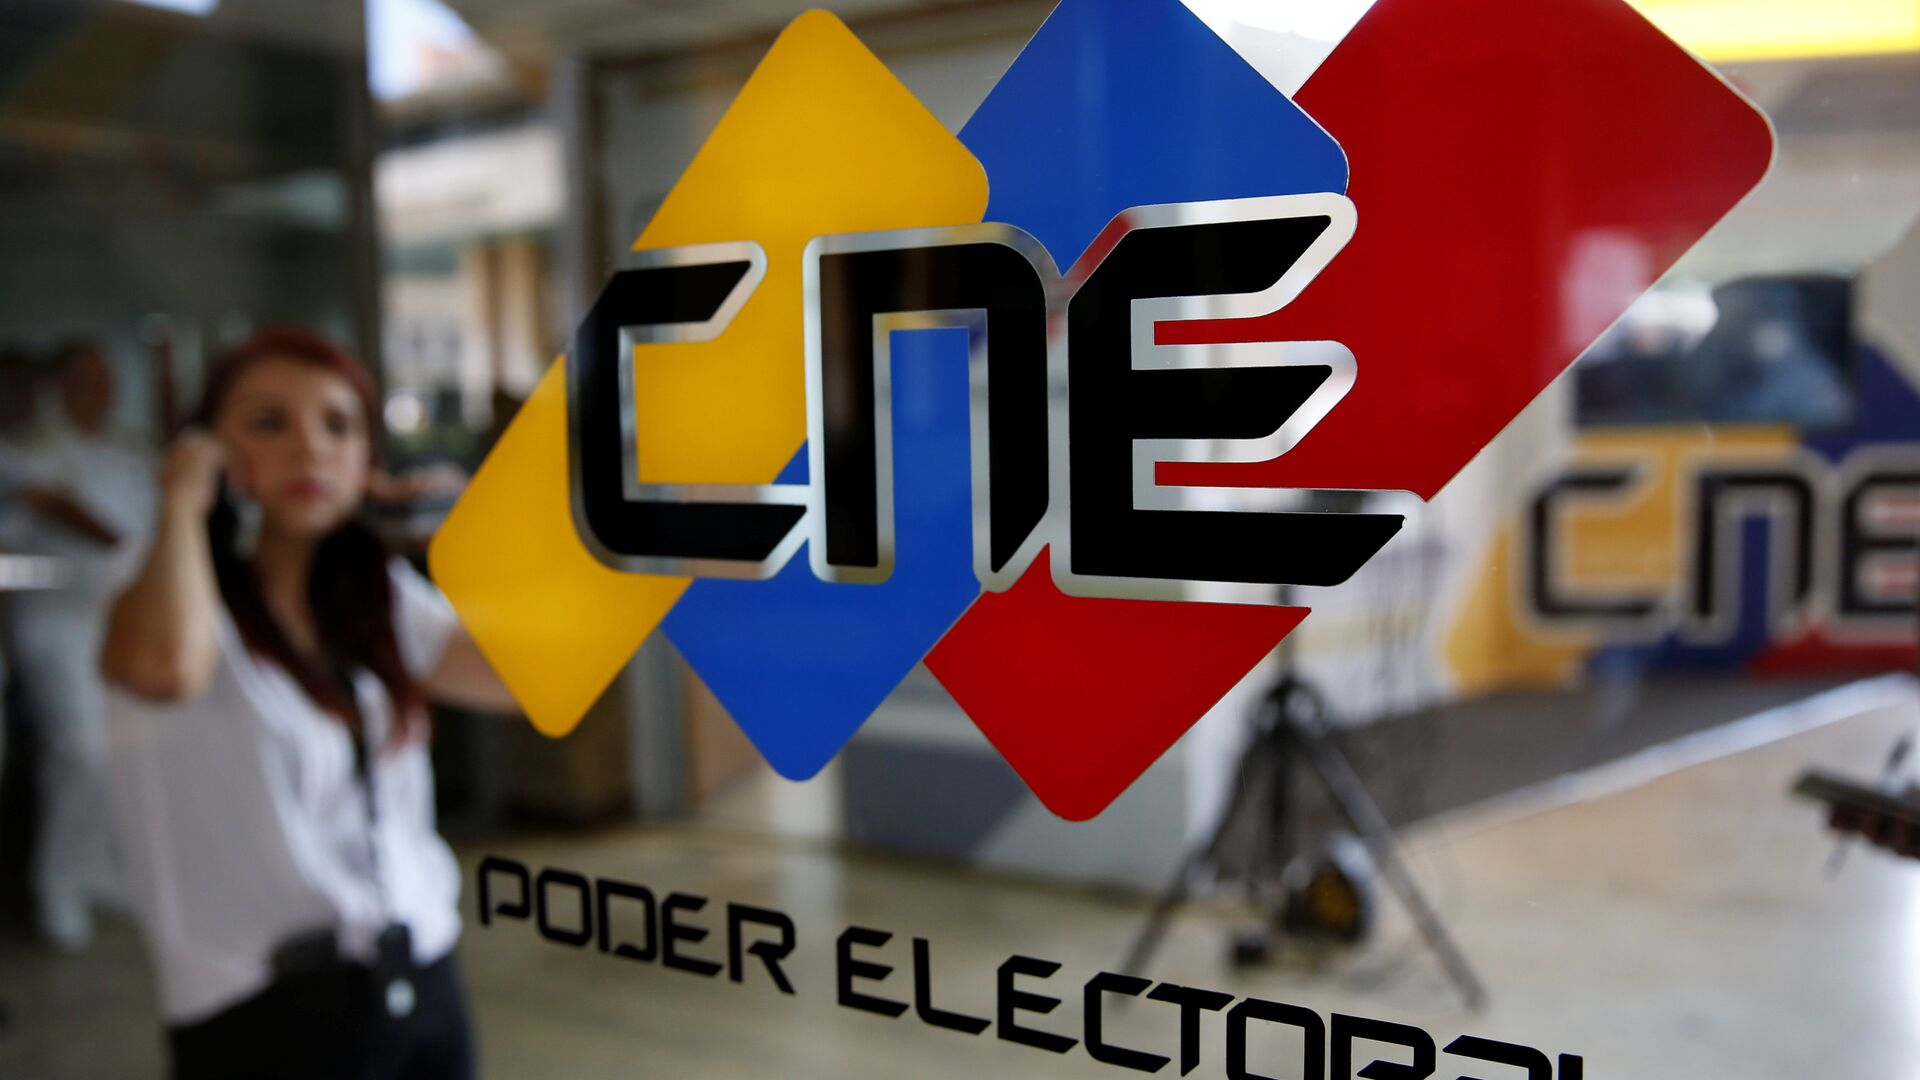 People walk past a logo of the National Electoral Council (CNE) at its headquarters in Caracas - Sputnik Mundo, 1920, 06.09.2021